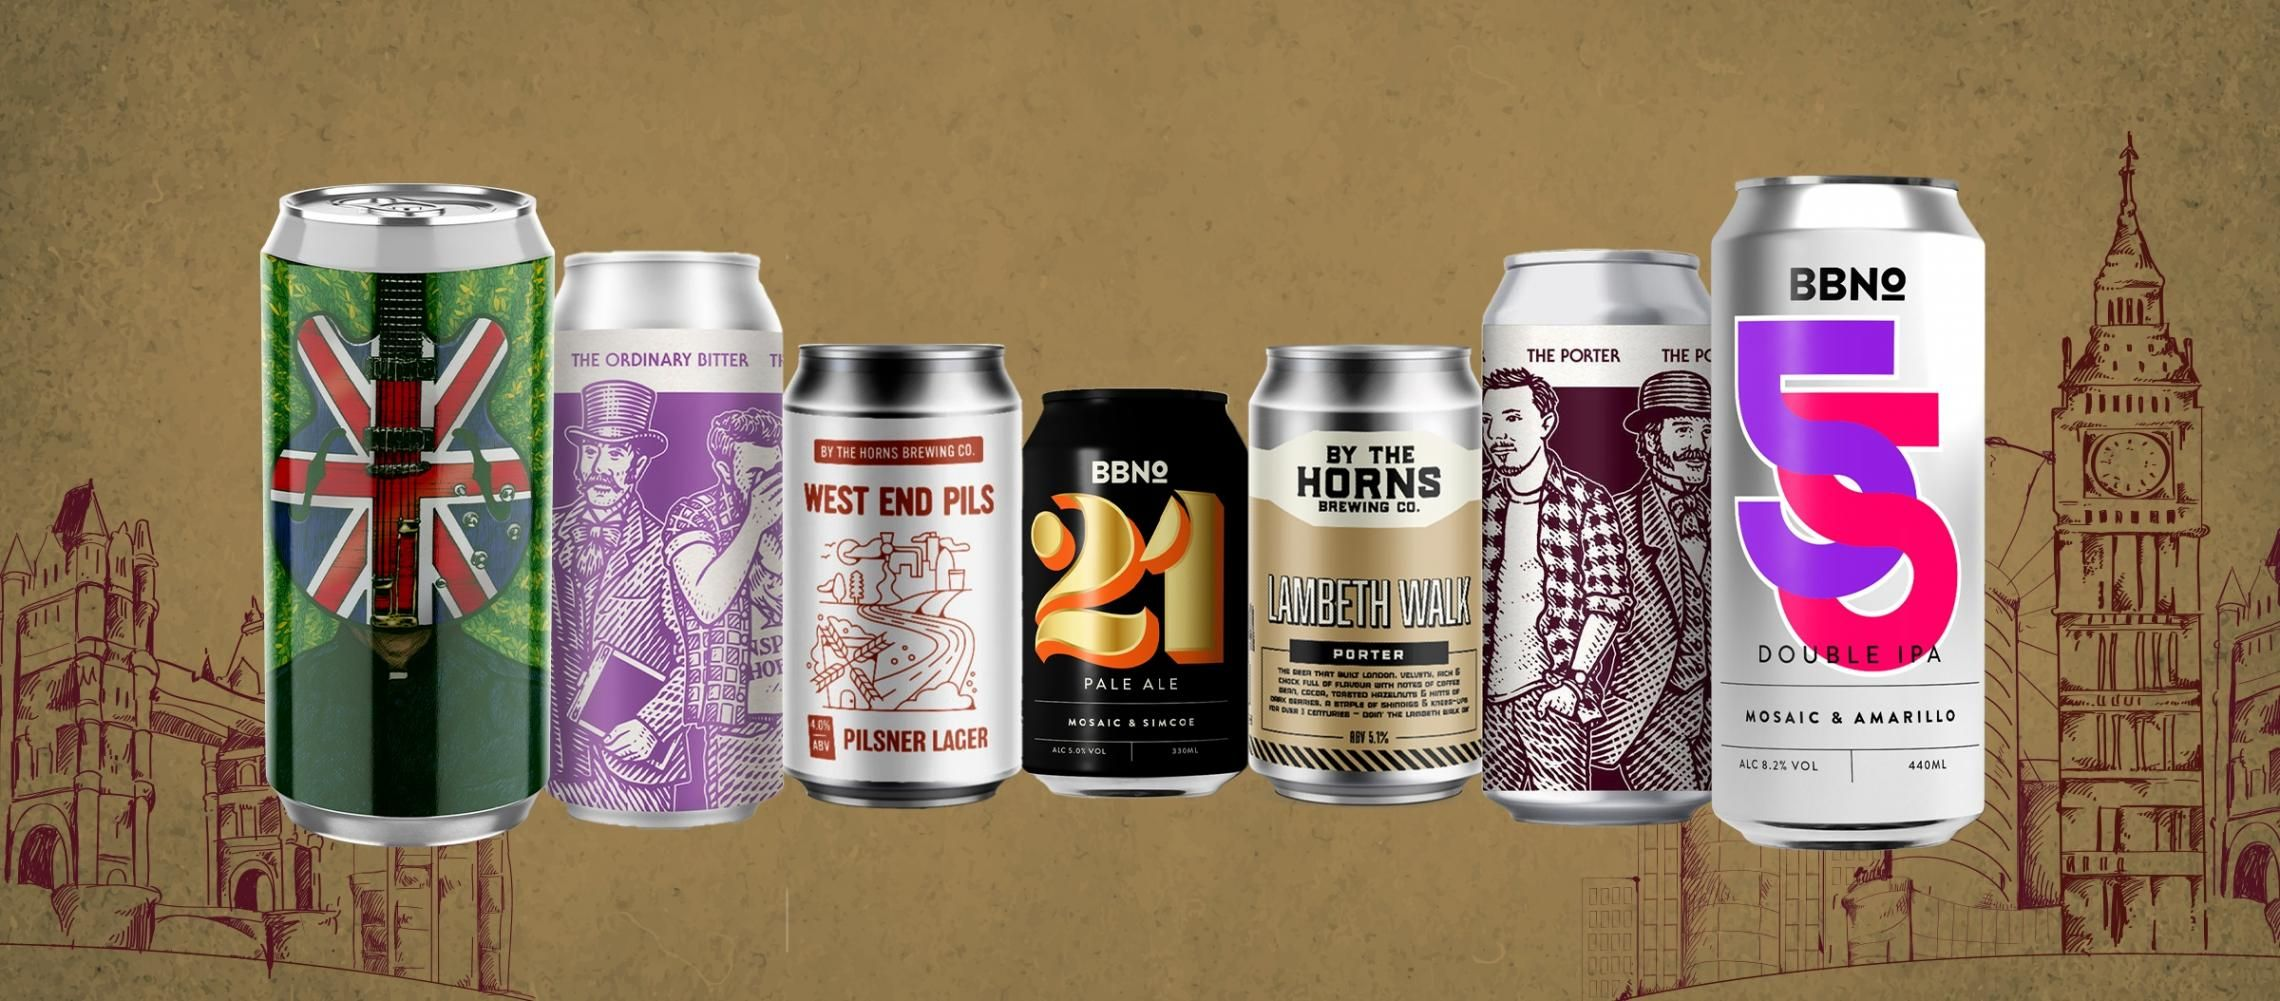 Photo for: 10 English Beers As Your Companion For Good Times